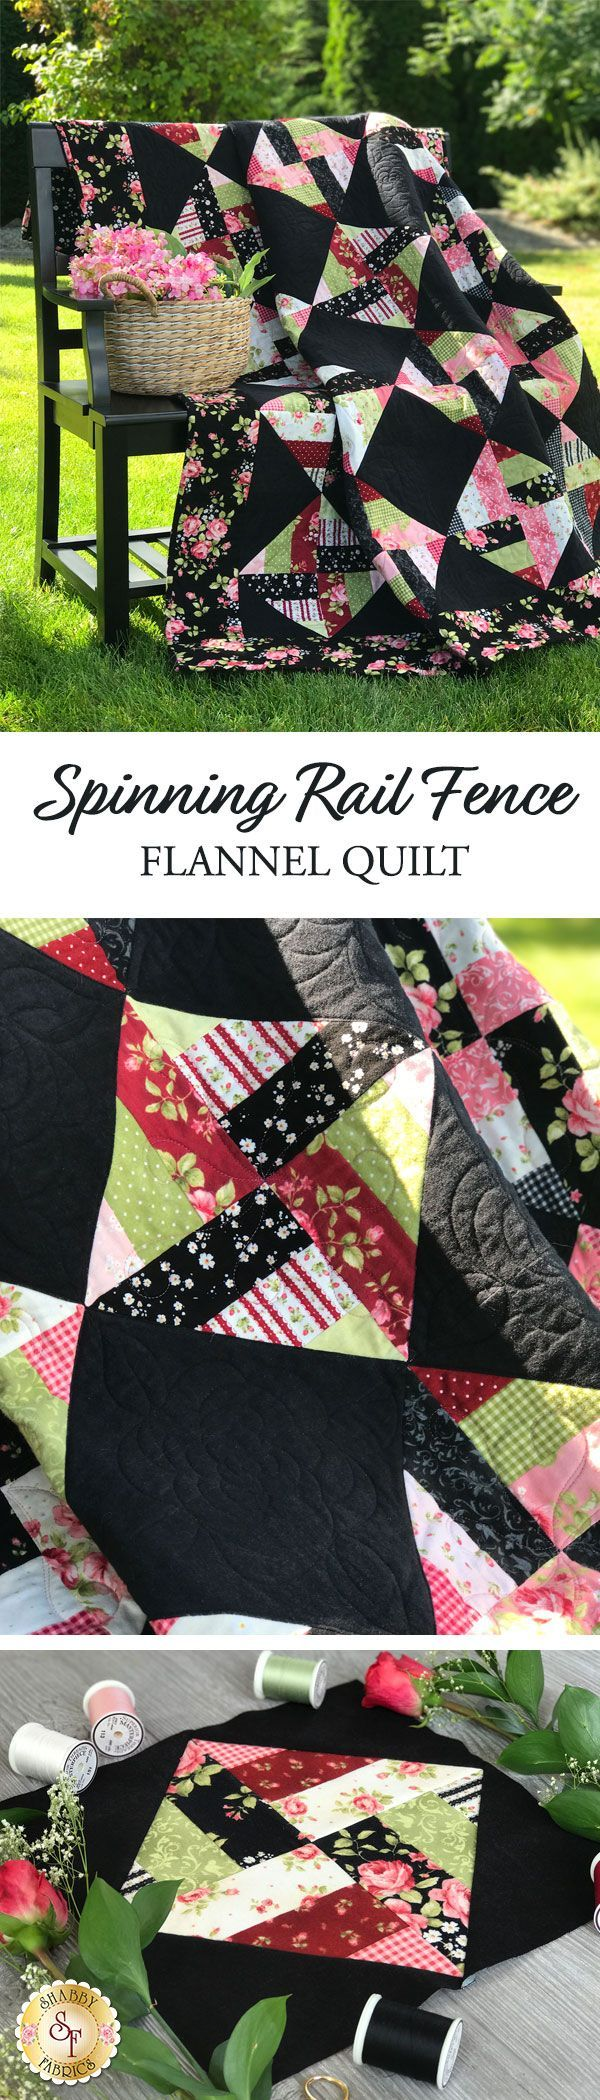 "Spinning Rail Fence Flannel Quilt Kit Sew a warm and cozy flannel quilt for your home with the Spinning Rail Fence Flannel Quilt! This beautiful Shabby Exclusive is perfect for quilters of all skill levels, beginners too! The best part is it's fast and simple, so you'll be cuddled underneath your very own cozy flannel quilt in no time! Quilt finishes to 59"" x 72""."